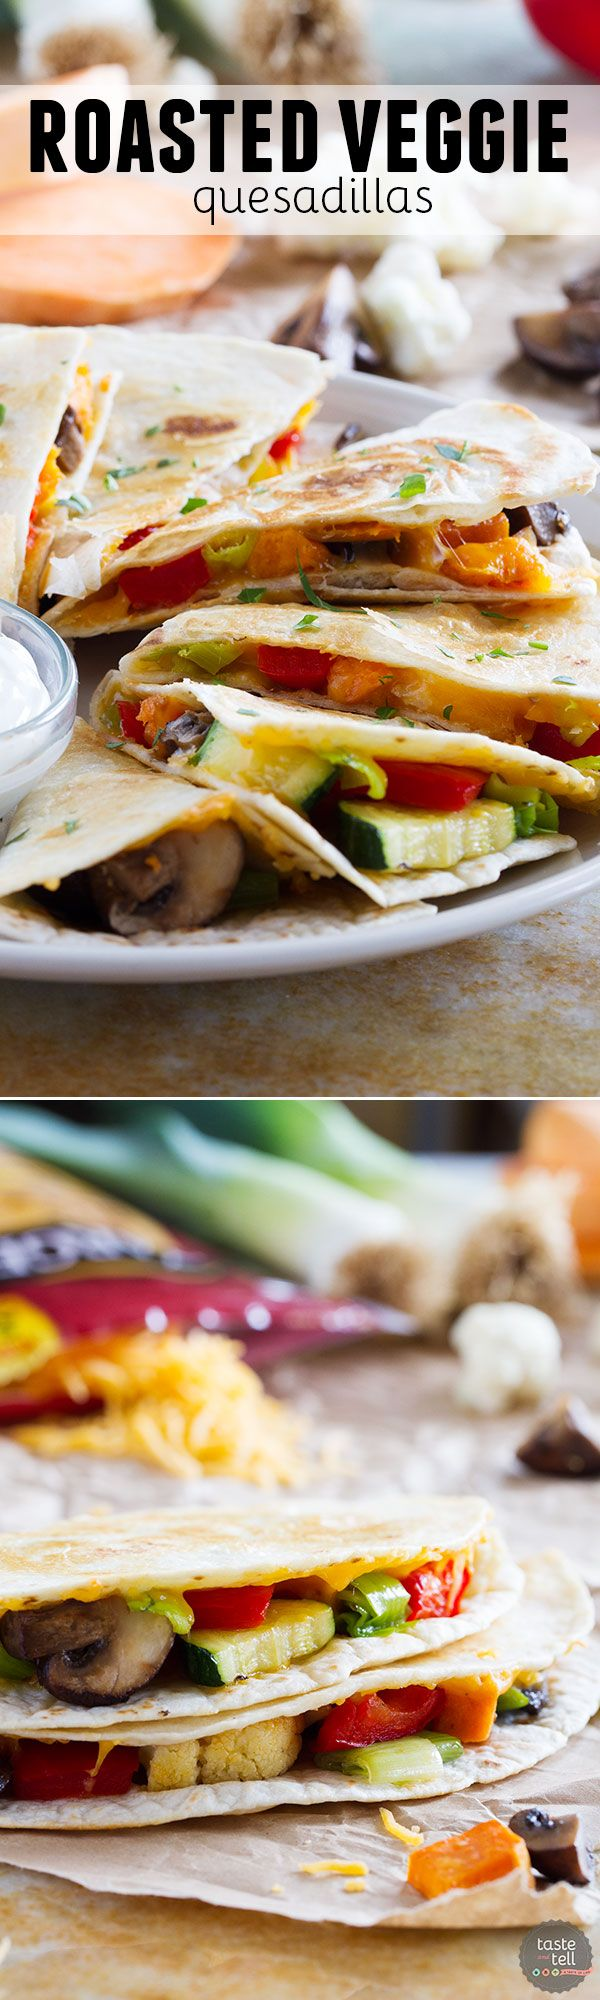 A great way to get your veggies in, these Roasted Veggie Quesadillas are a great way to clean out the veggie drawer to make a lunch or dinner that won't leave you missing the meat!